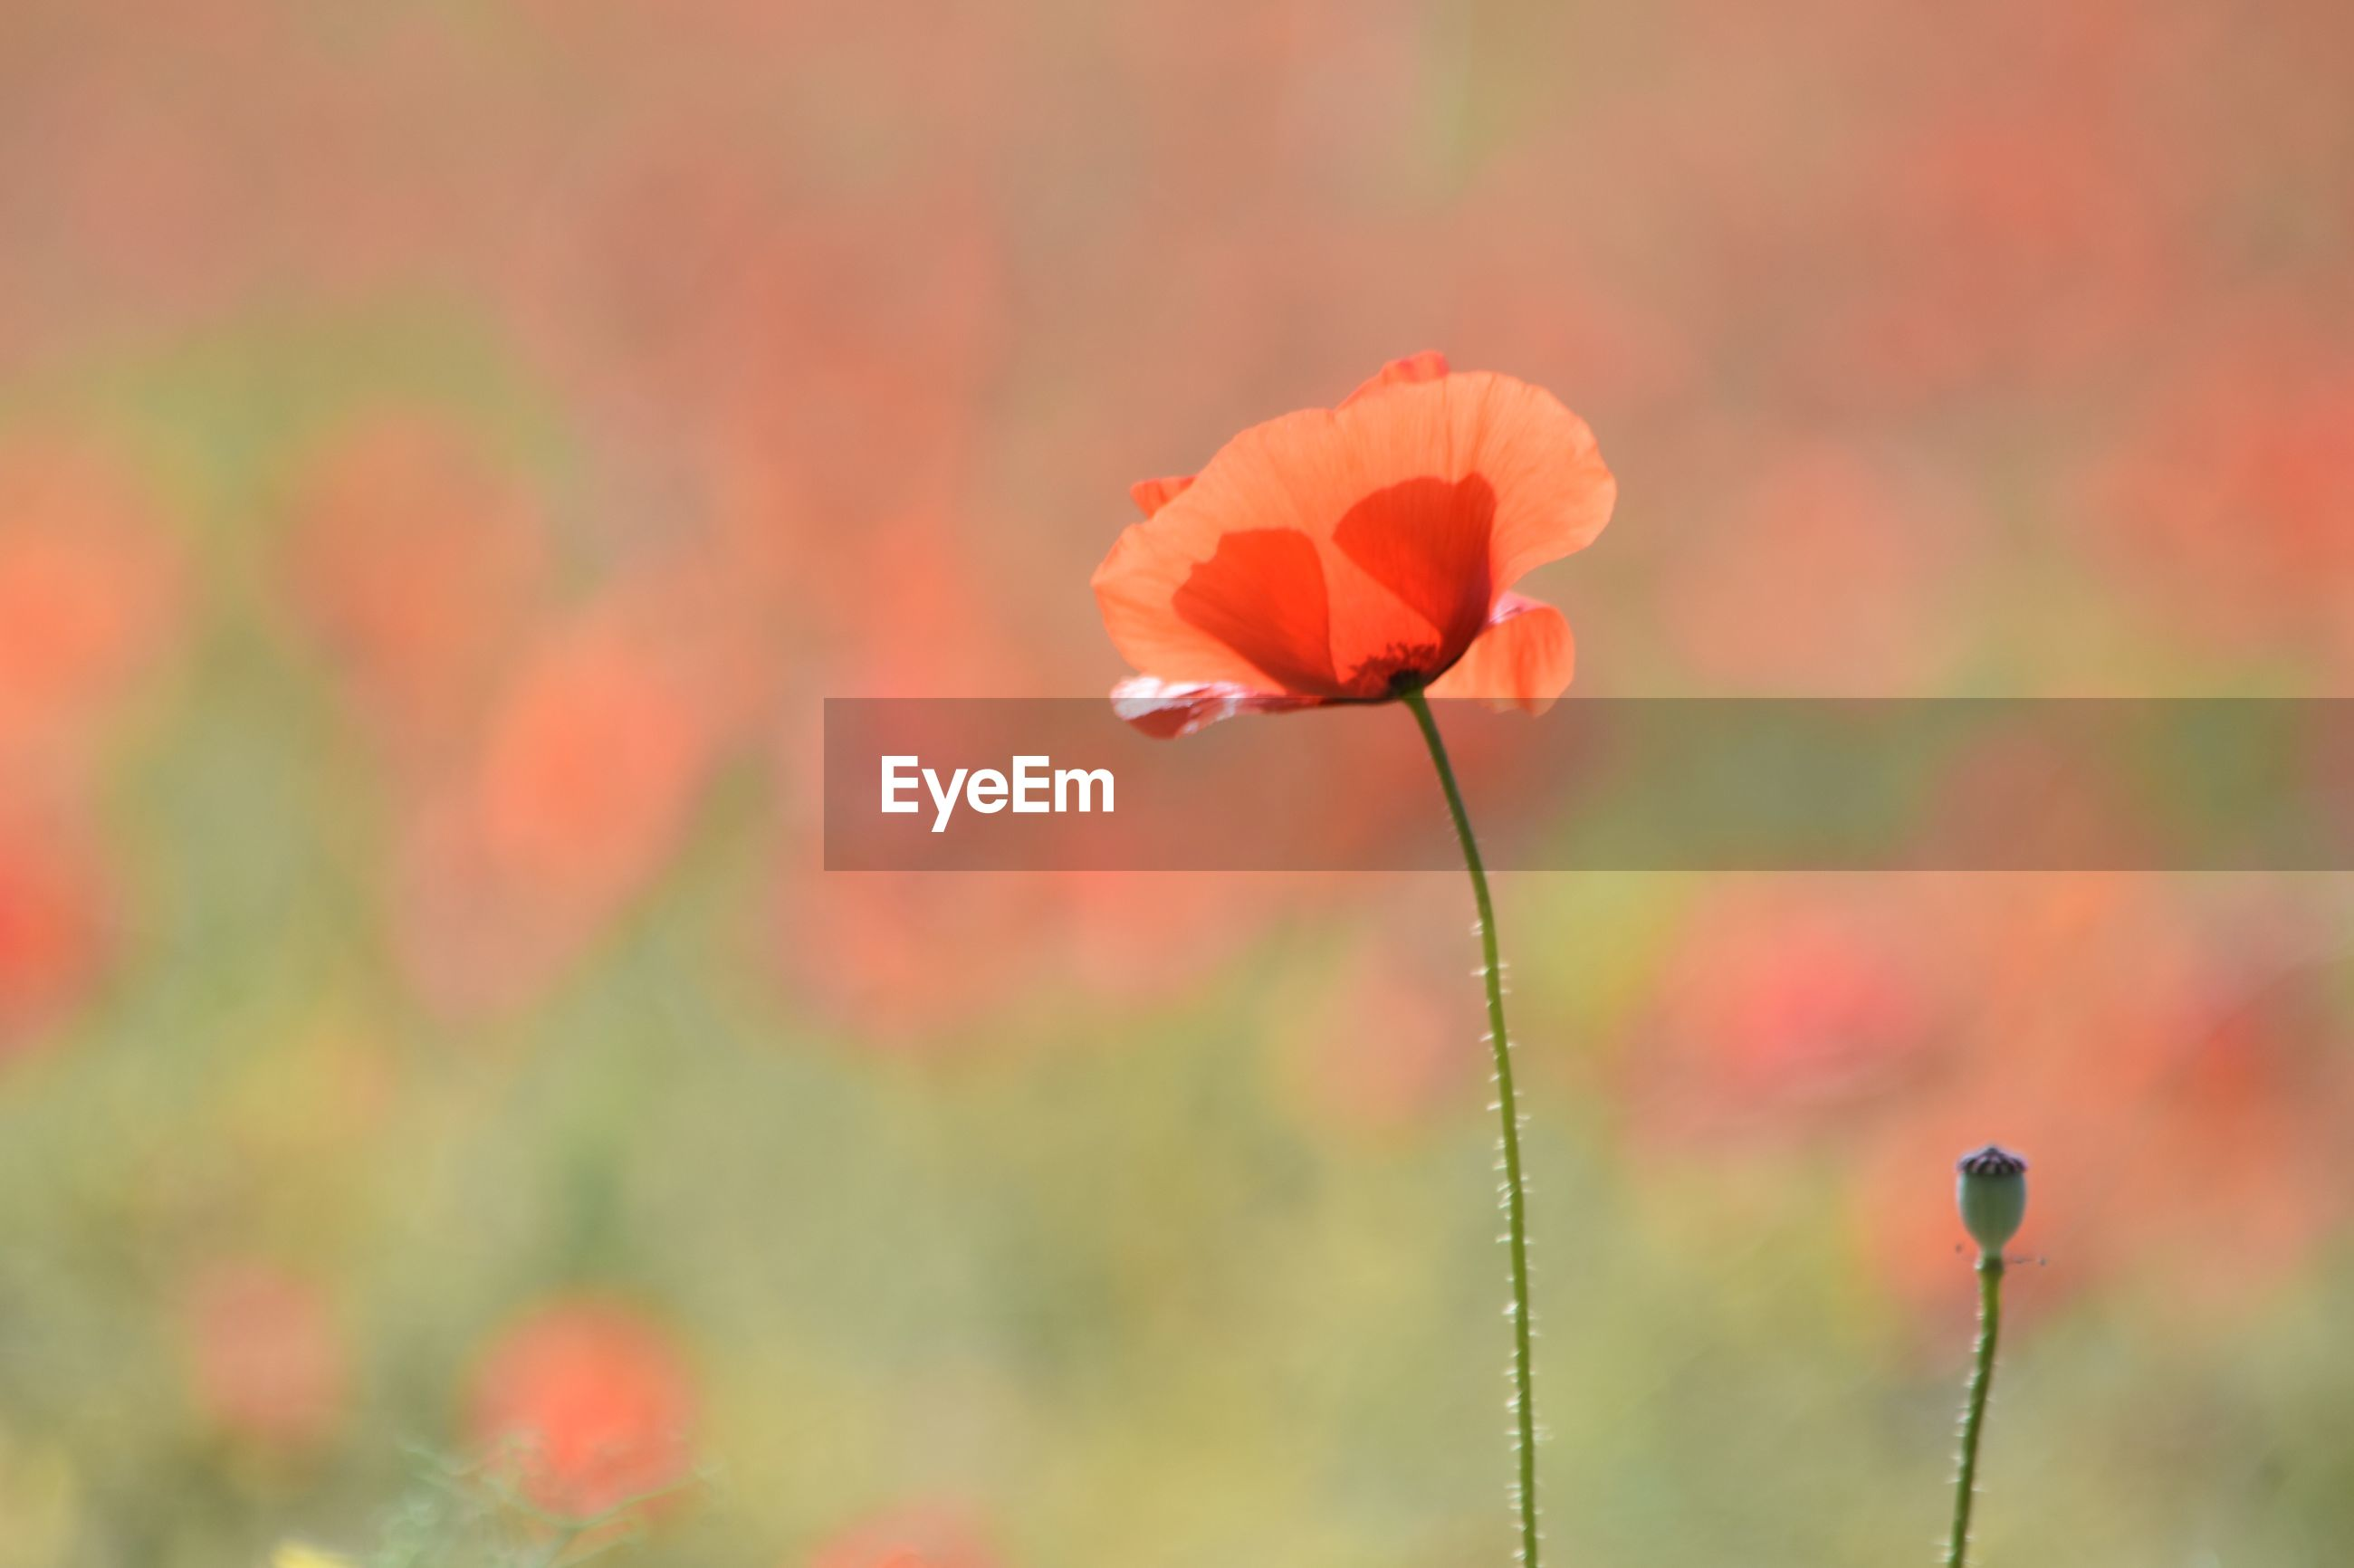 flowering plant, flower, freshness, fragility, vulnerability, plant, beauty in nature, petal, growth, close-up, focus on foreground, flower head, plant stem, no people, inflorescence, nature, red, outdoors, poppy, orange color, orange